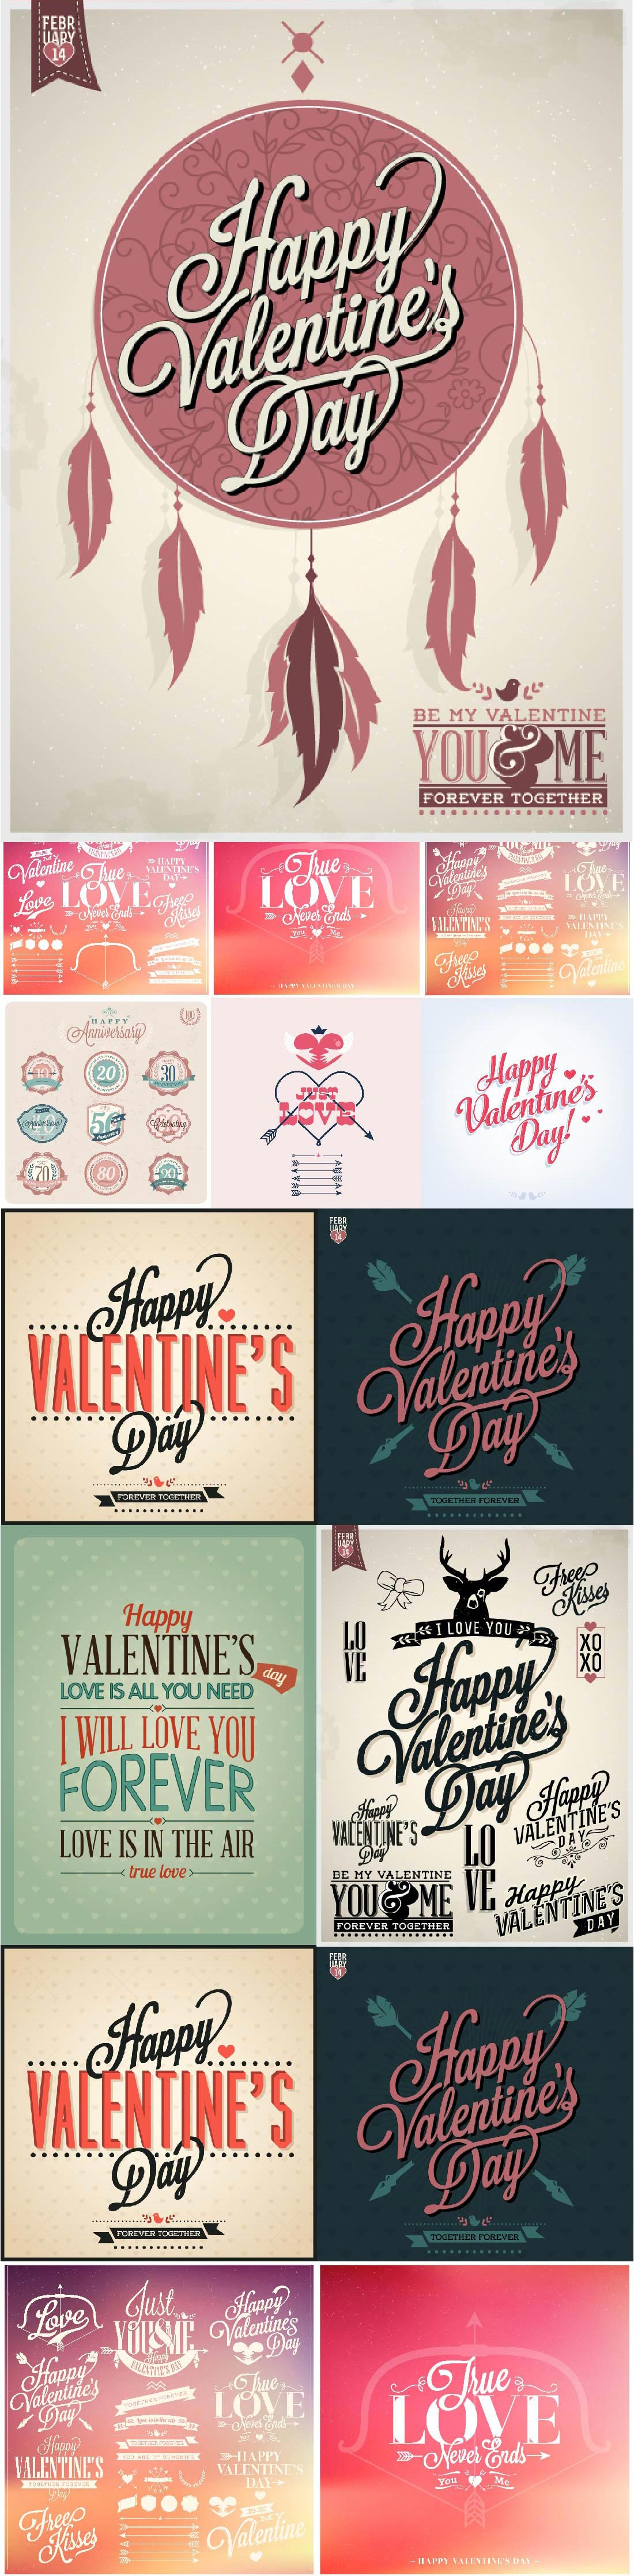 500+ Premium Vectors Collection 19